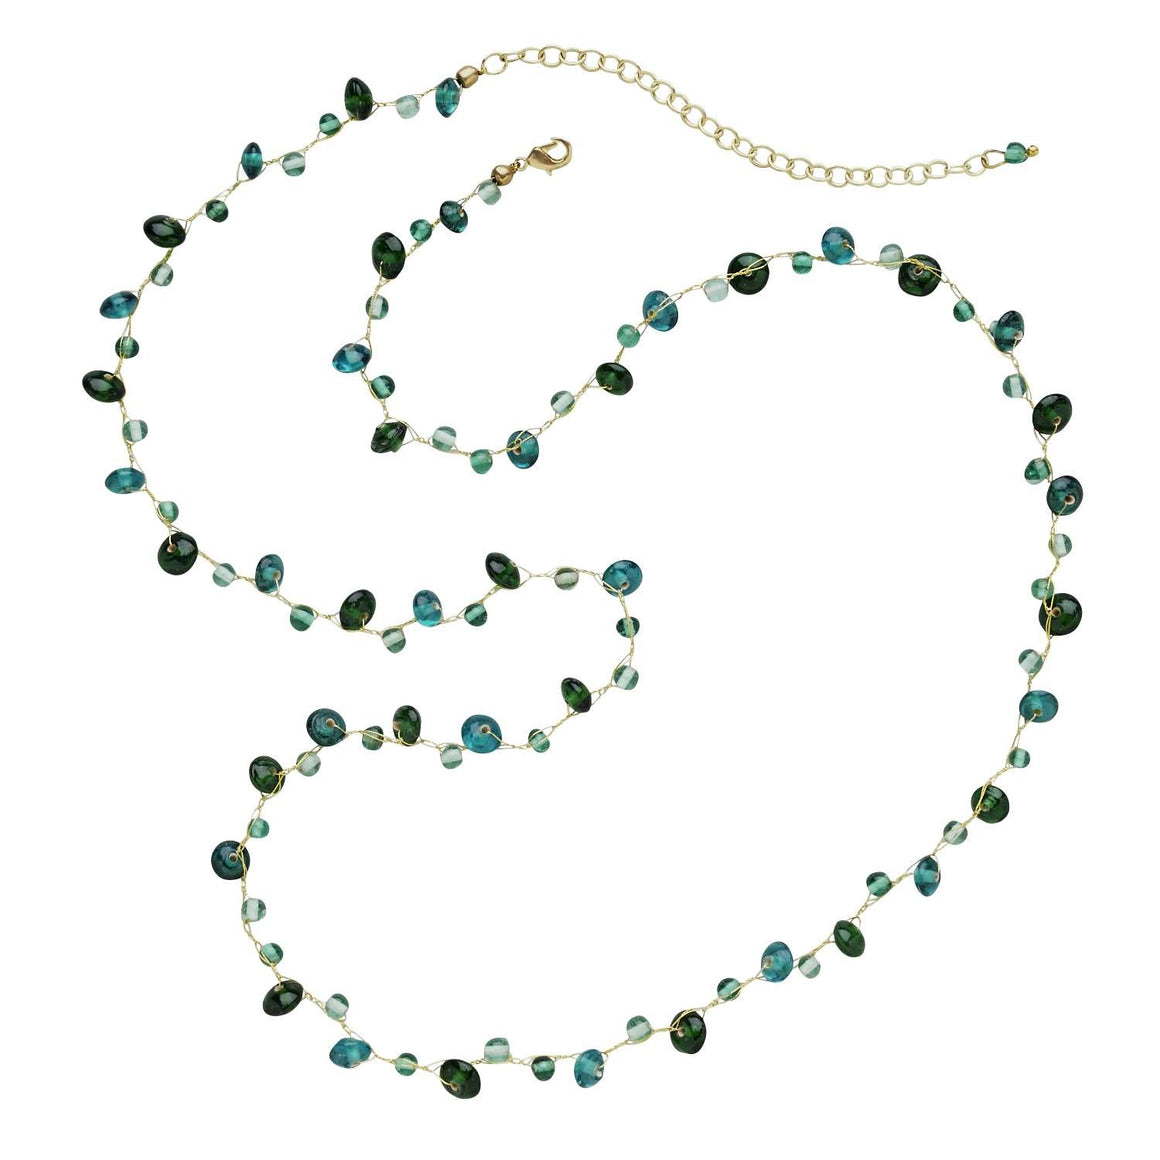 Fresh Water Aqua Tones Glass Bead Necklace Handcrafted in India